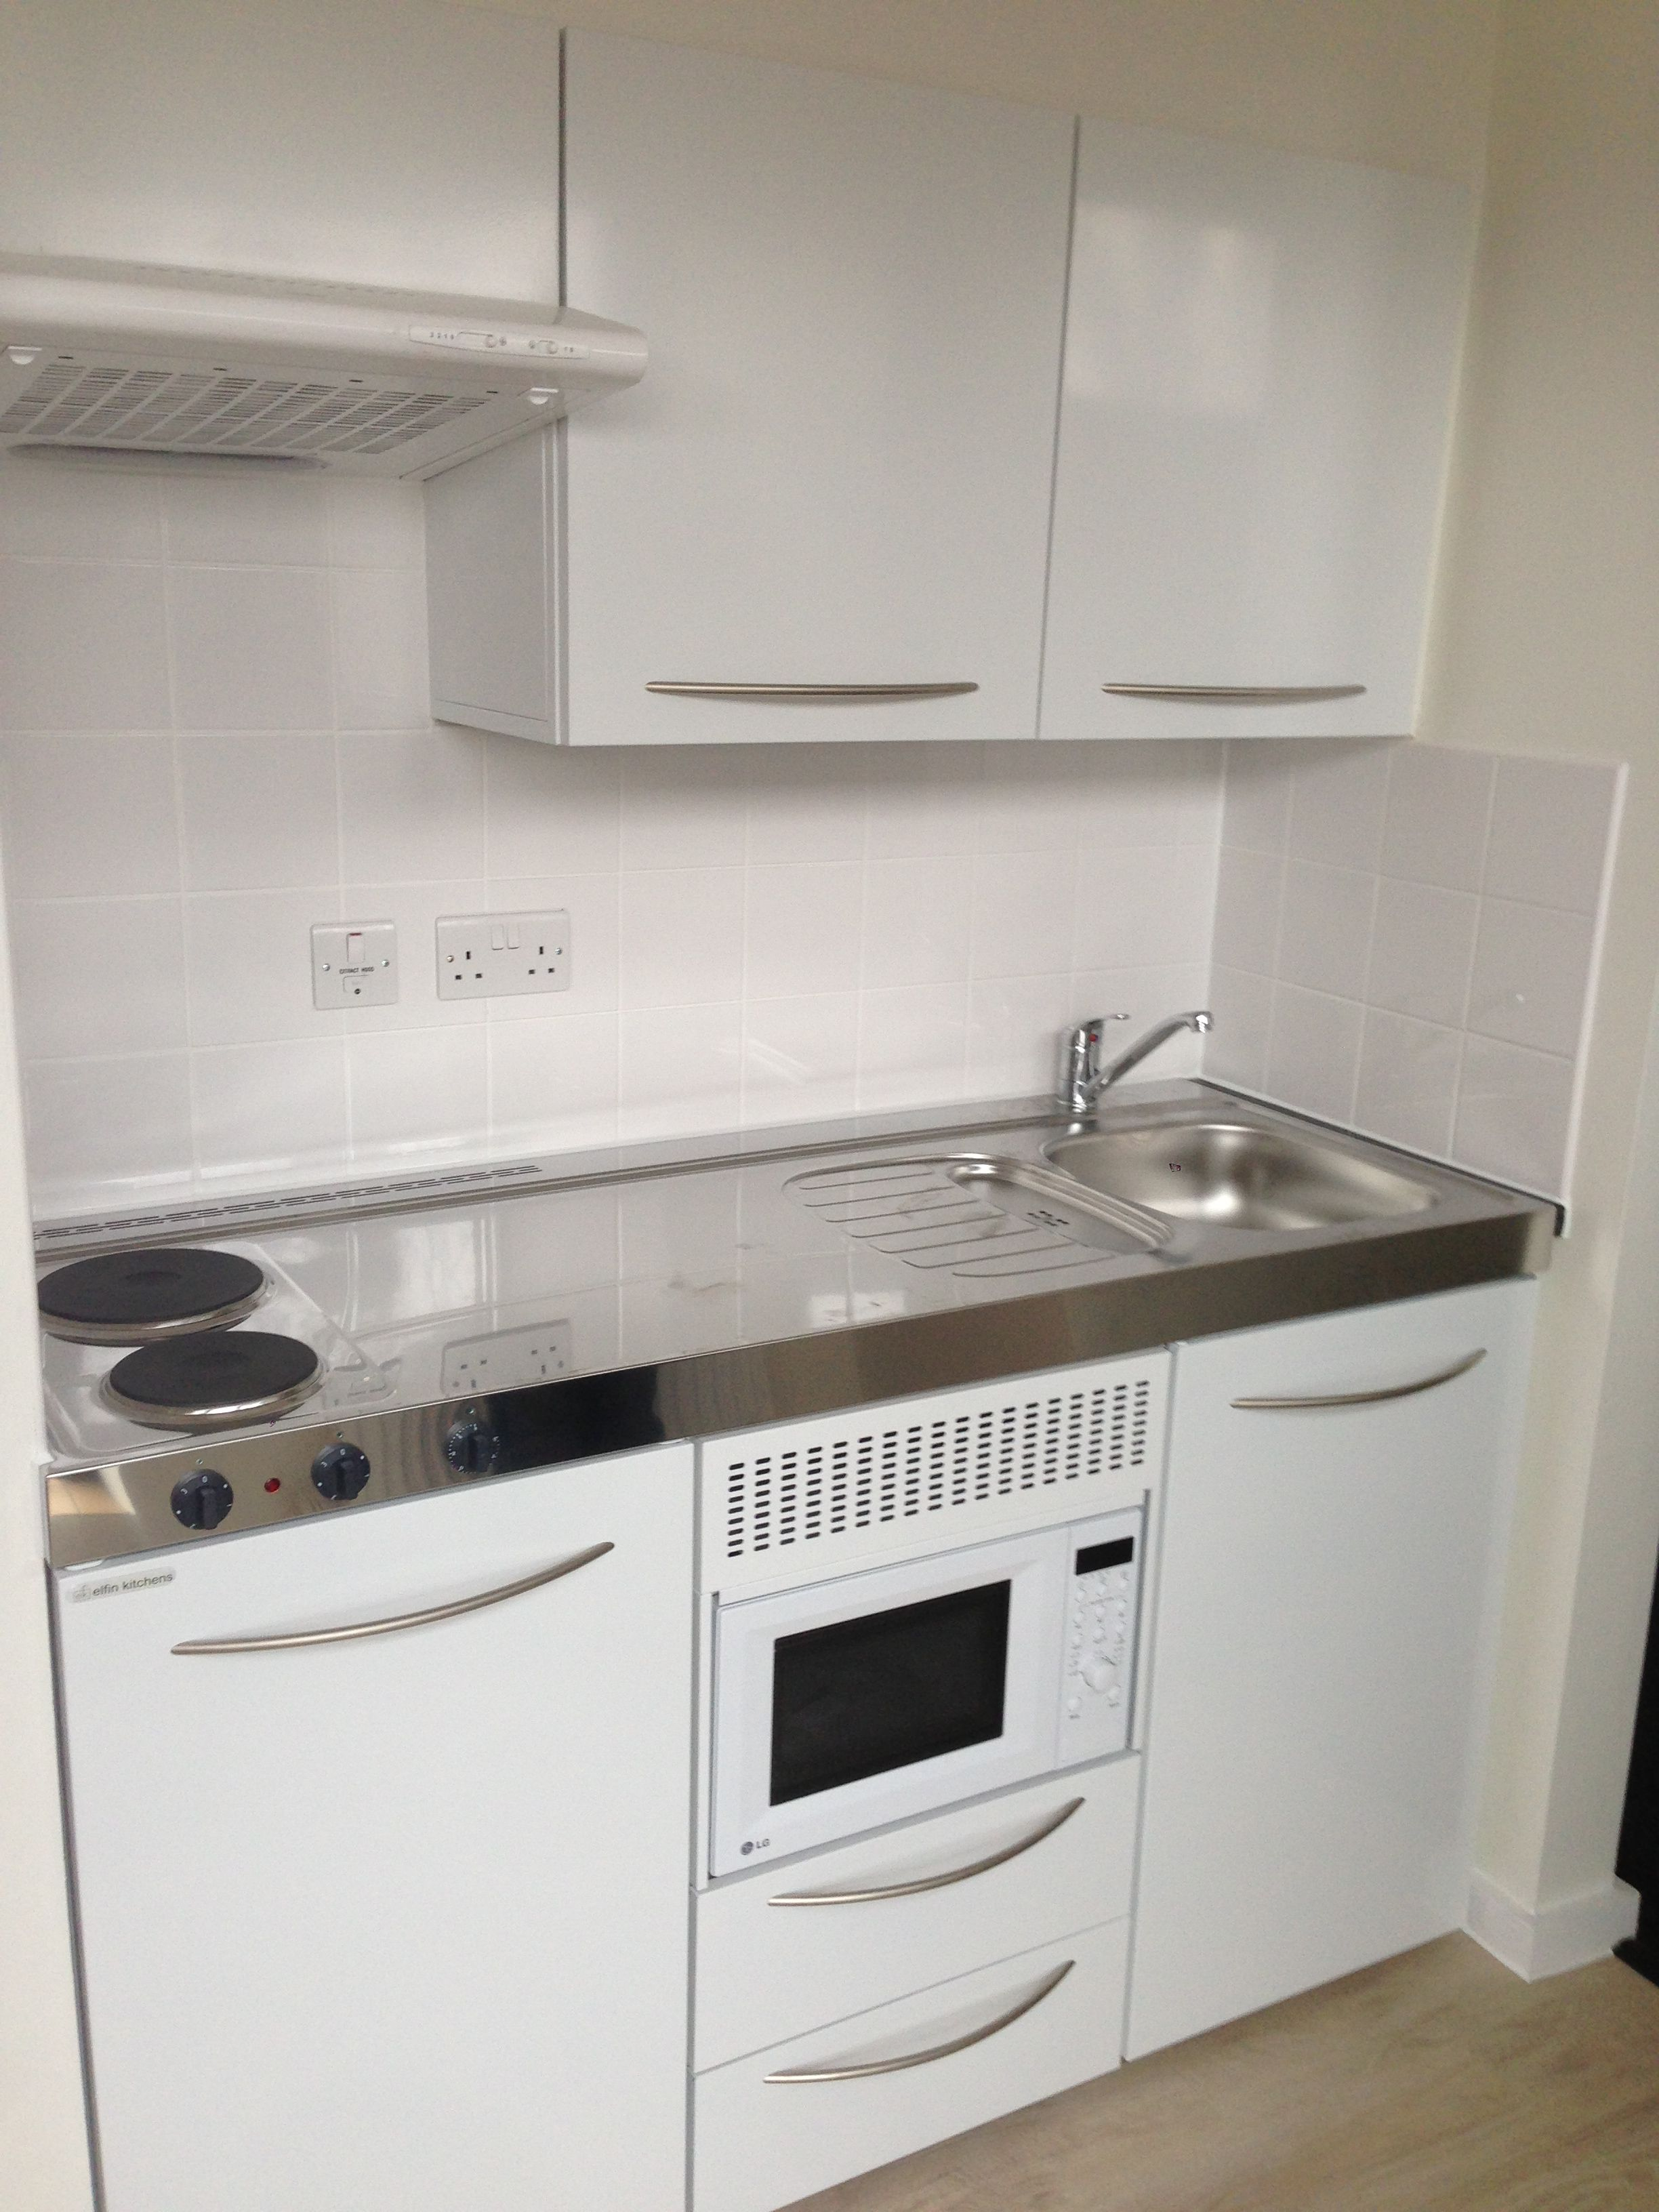 M-150-Ms-K with wall cupboards and extractor | Hostel Accommodation, Central London | Elfin Kitchens